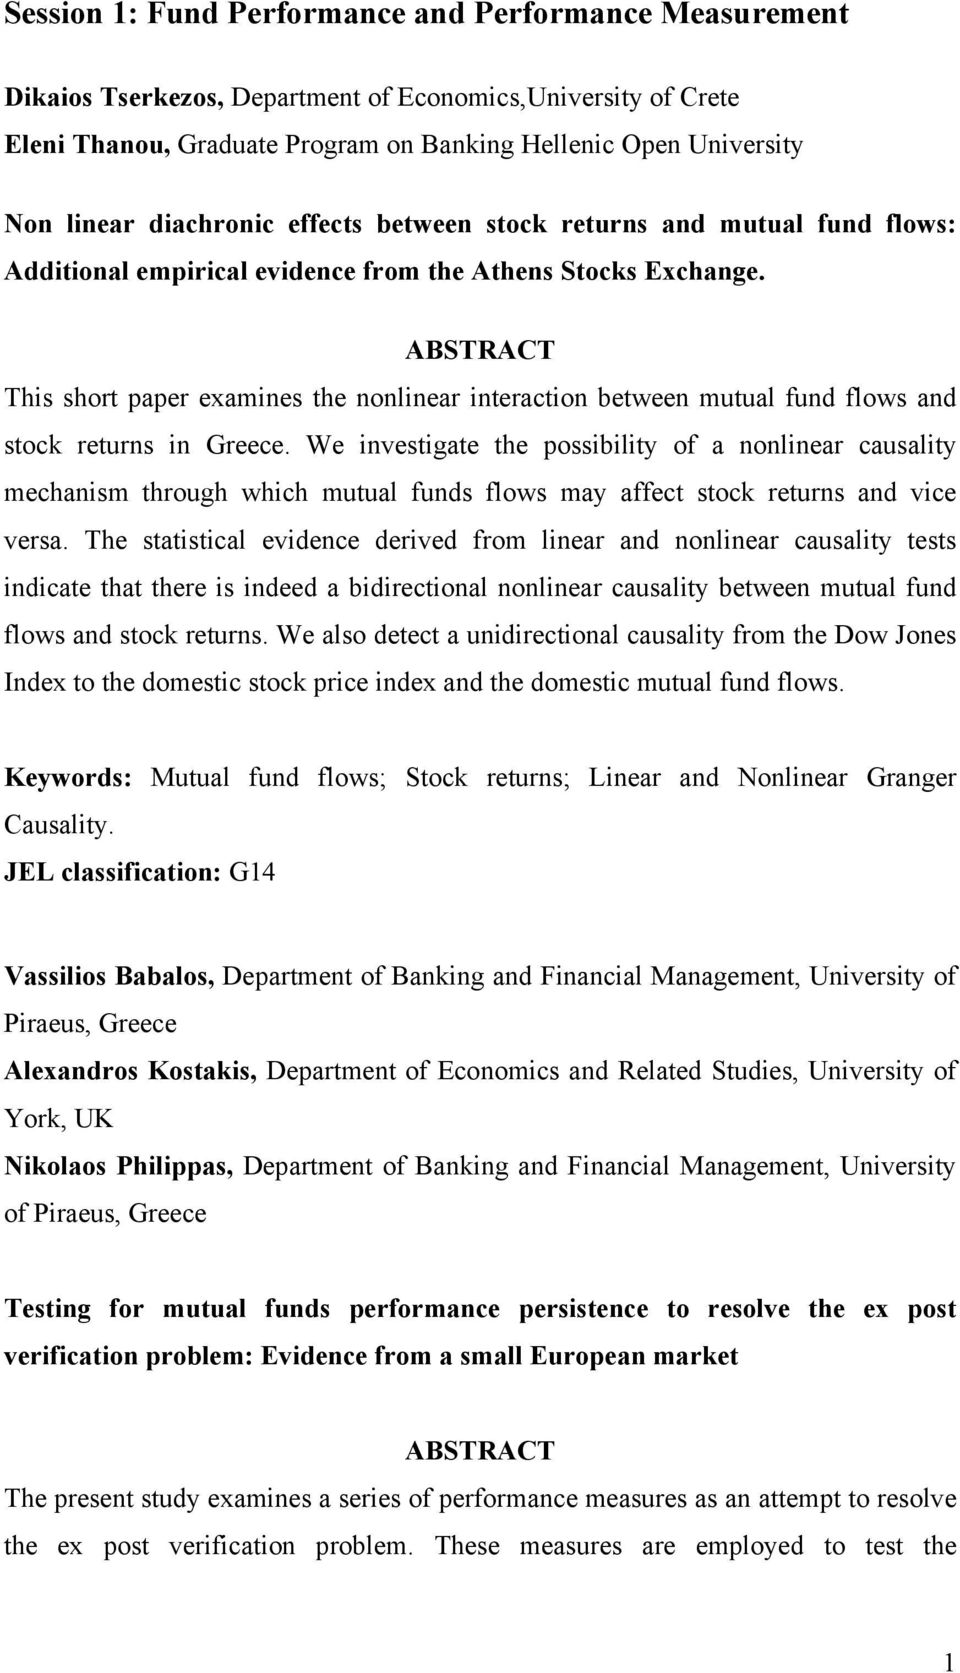 This short paper examines the nonlinear interaction between mutual fund flows and stock returns in Greece.